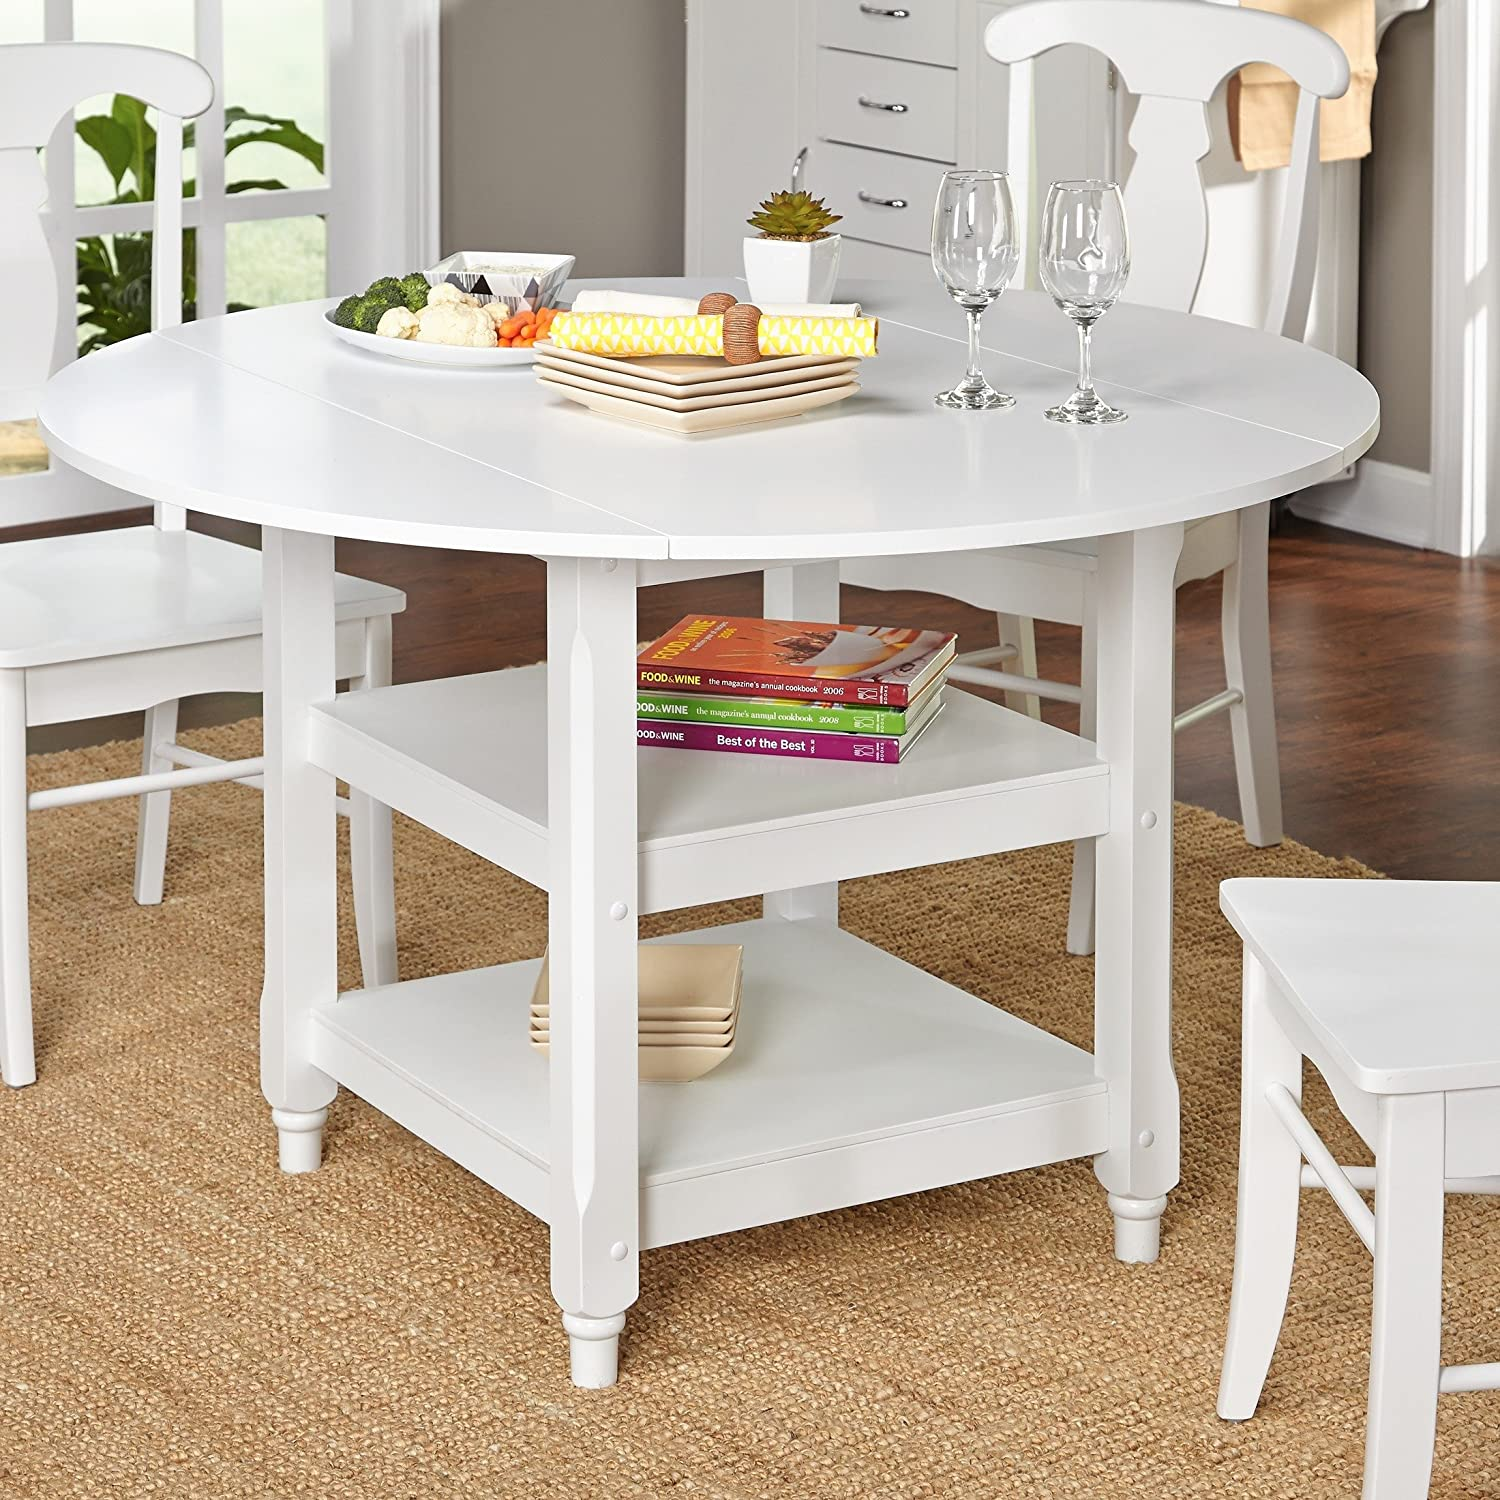 Modhaus Living Modern White 48 Inch Round Cottage Country Dining Table With  Two Shelves - Includes Pen